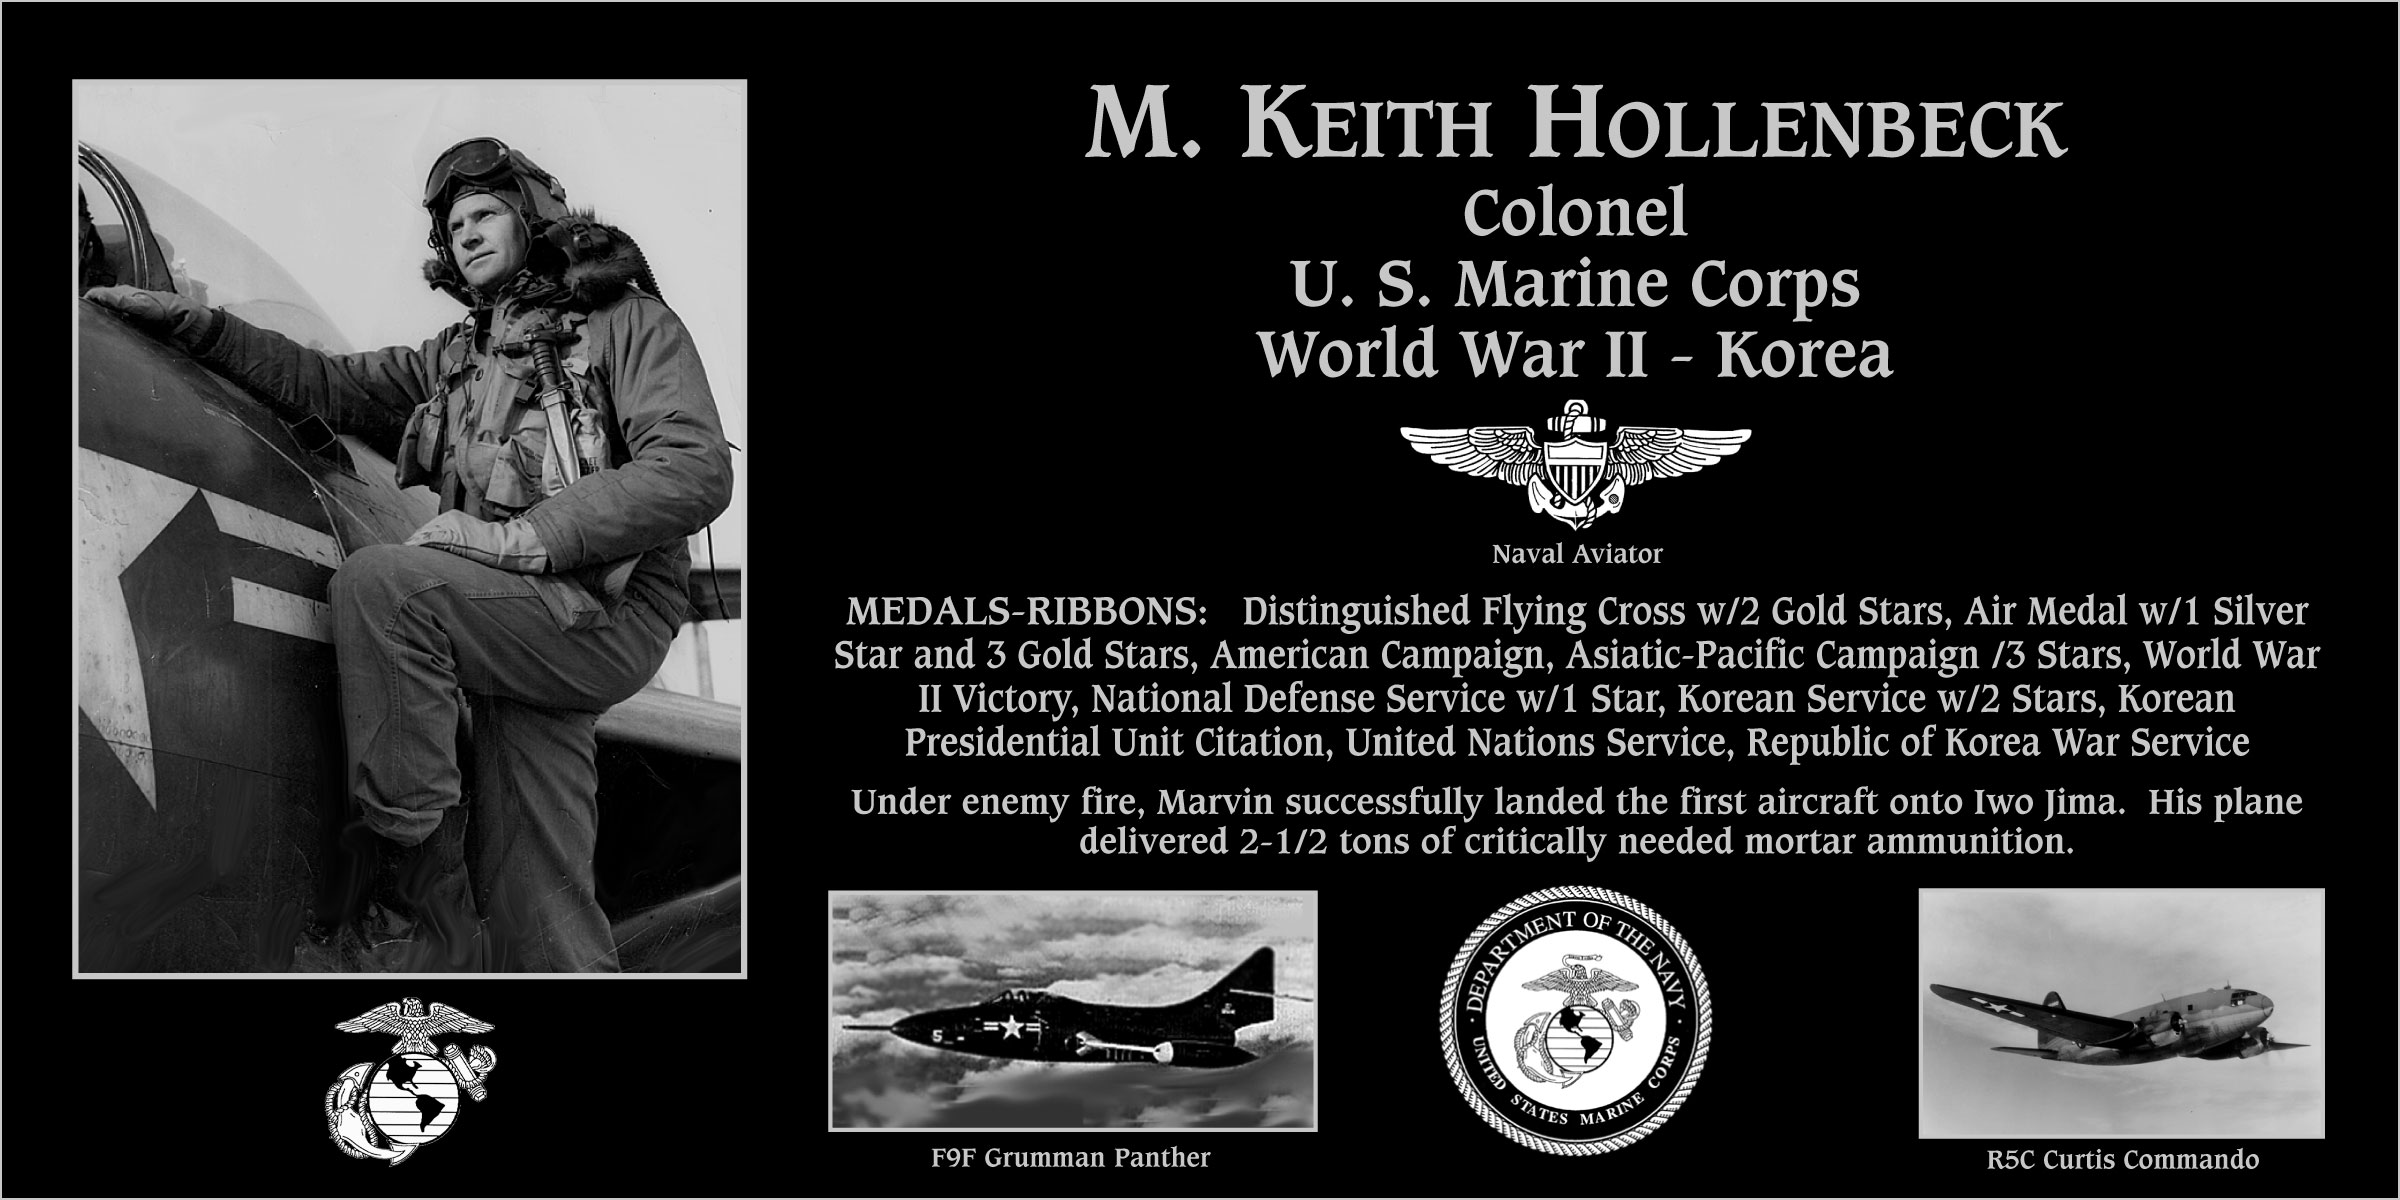 M. Keith Hollenbeck